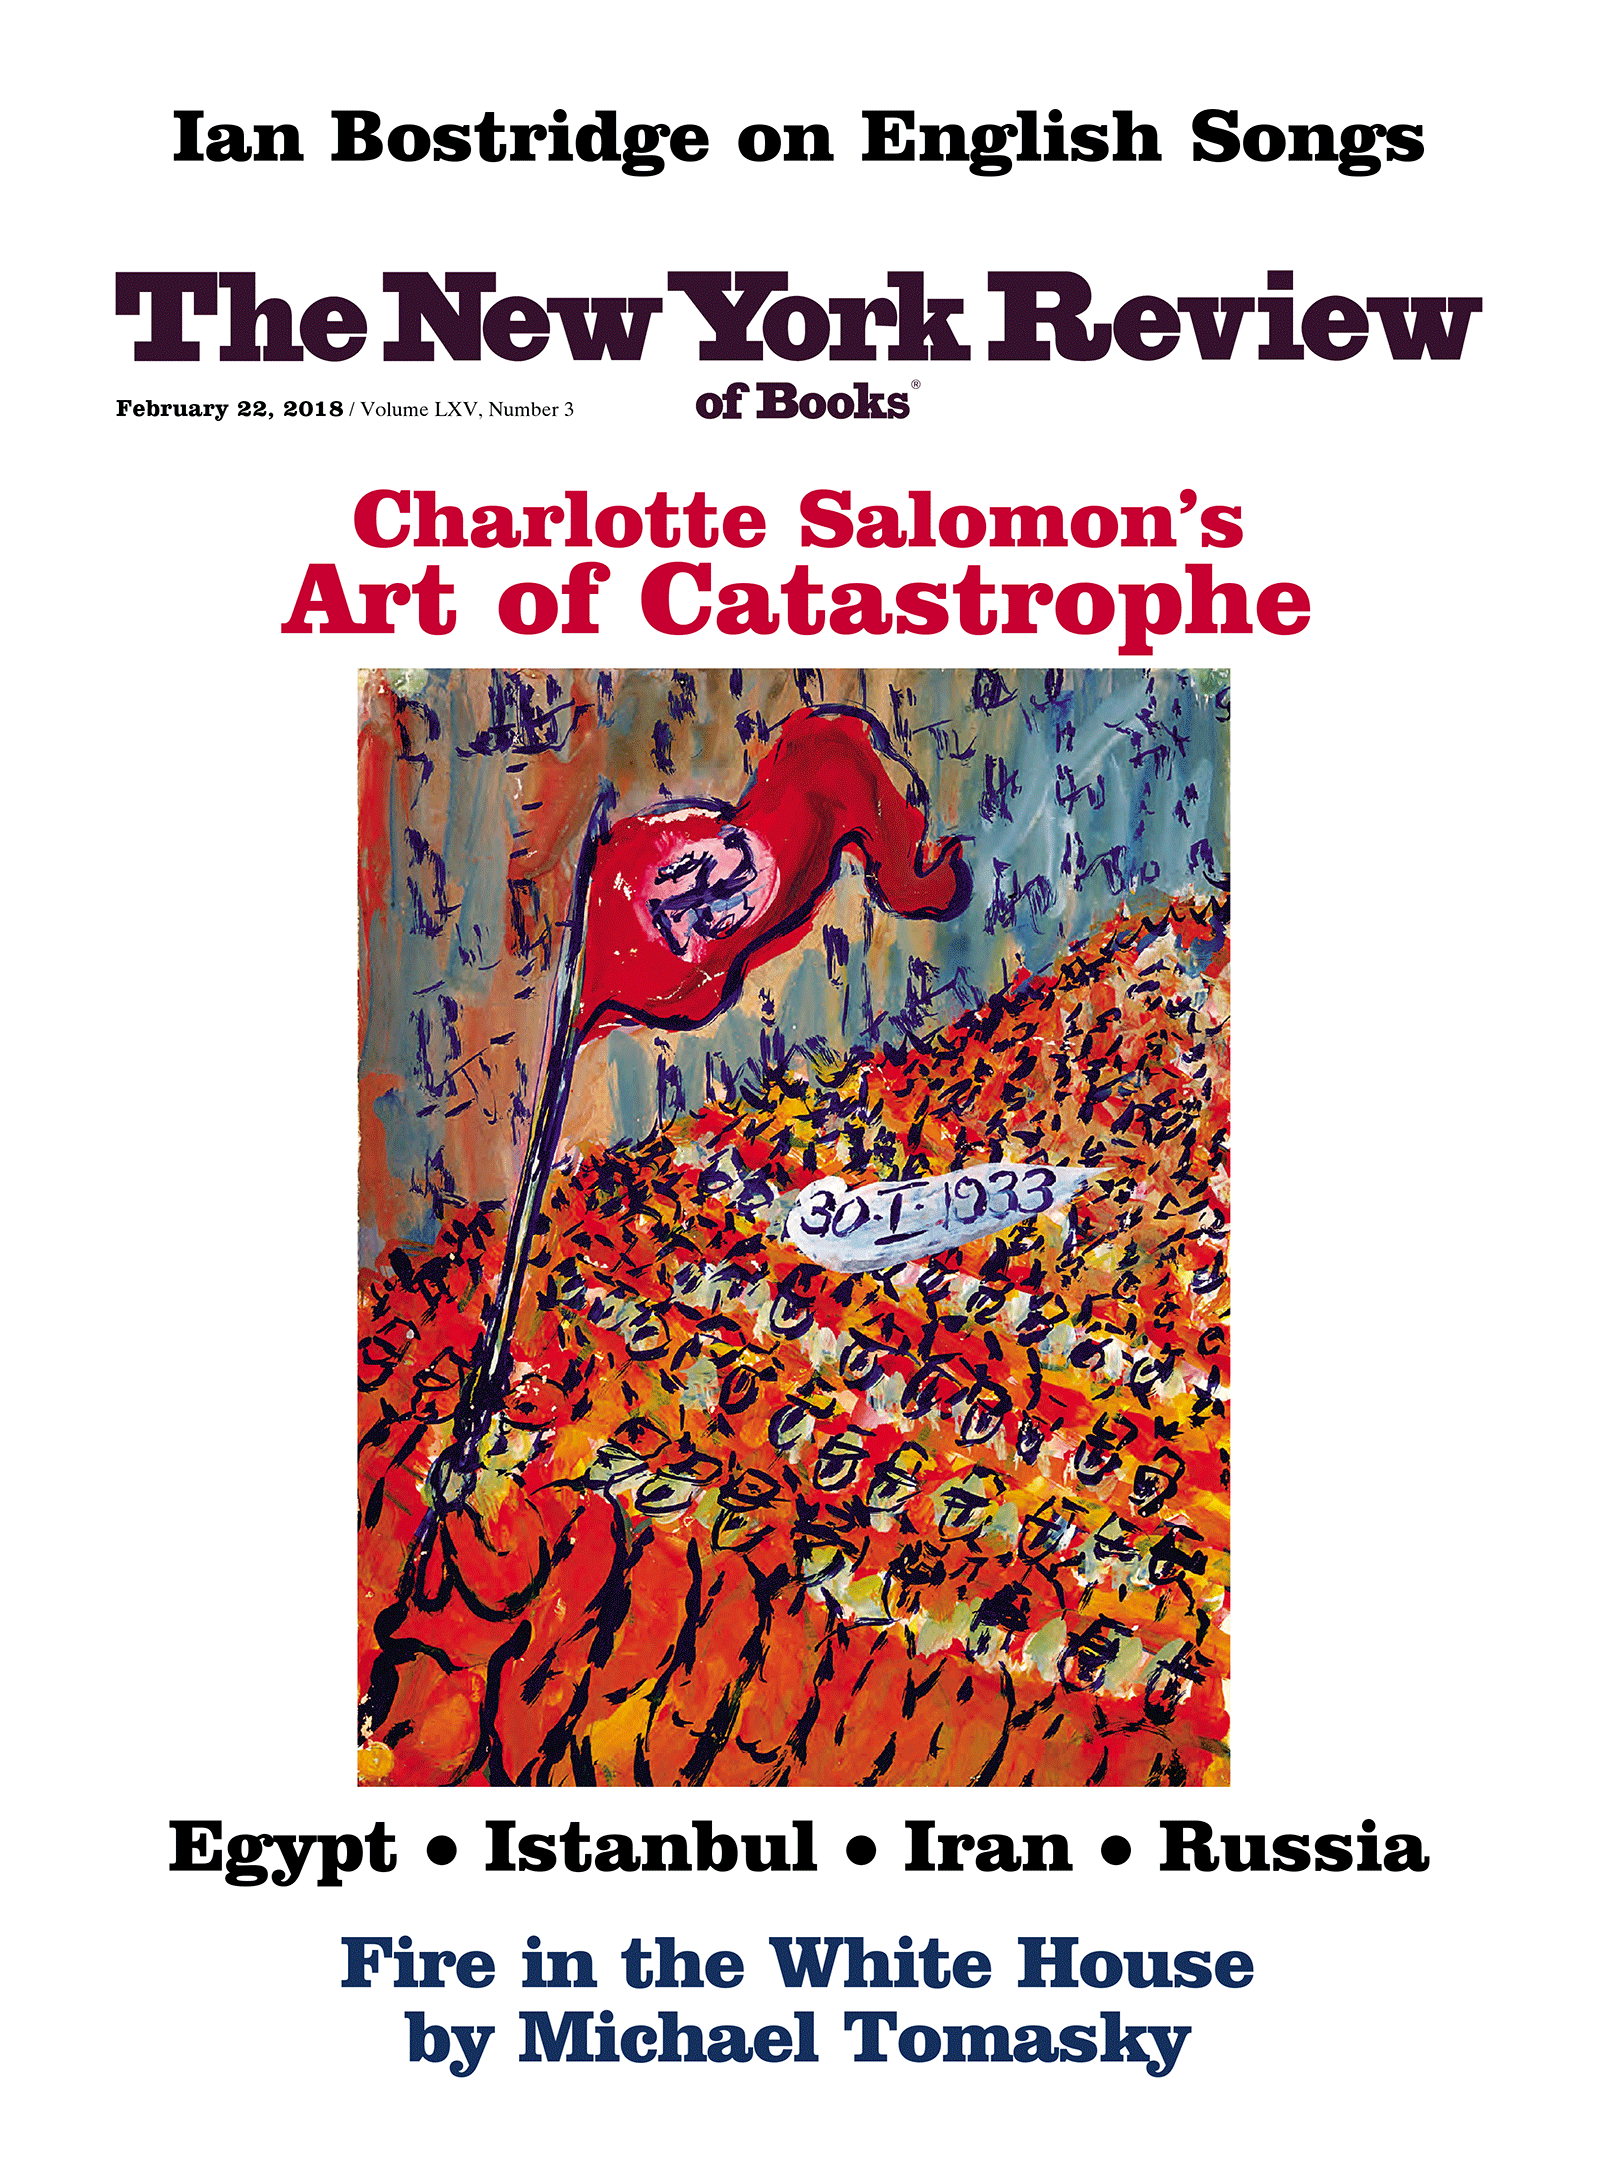 Image of the February 22, 2018 issue cover.